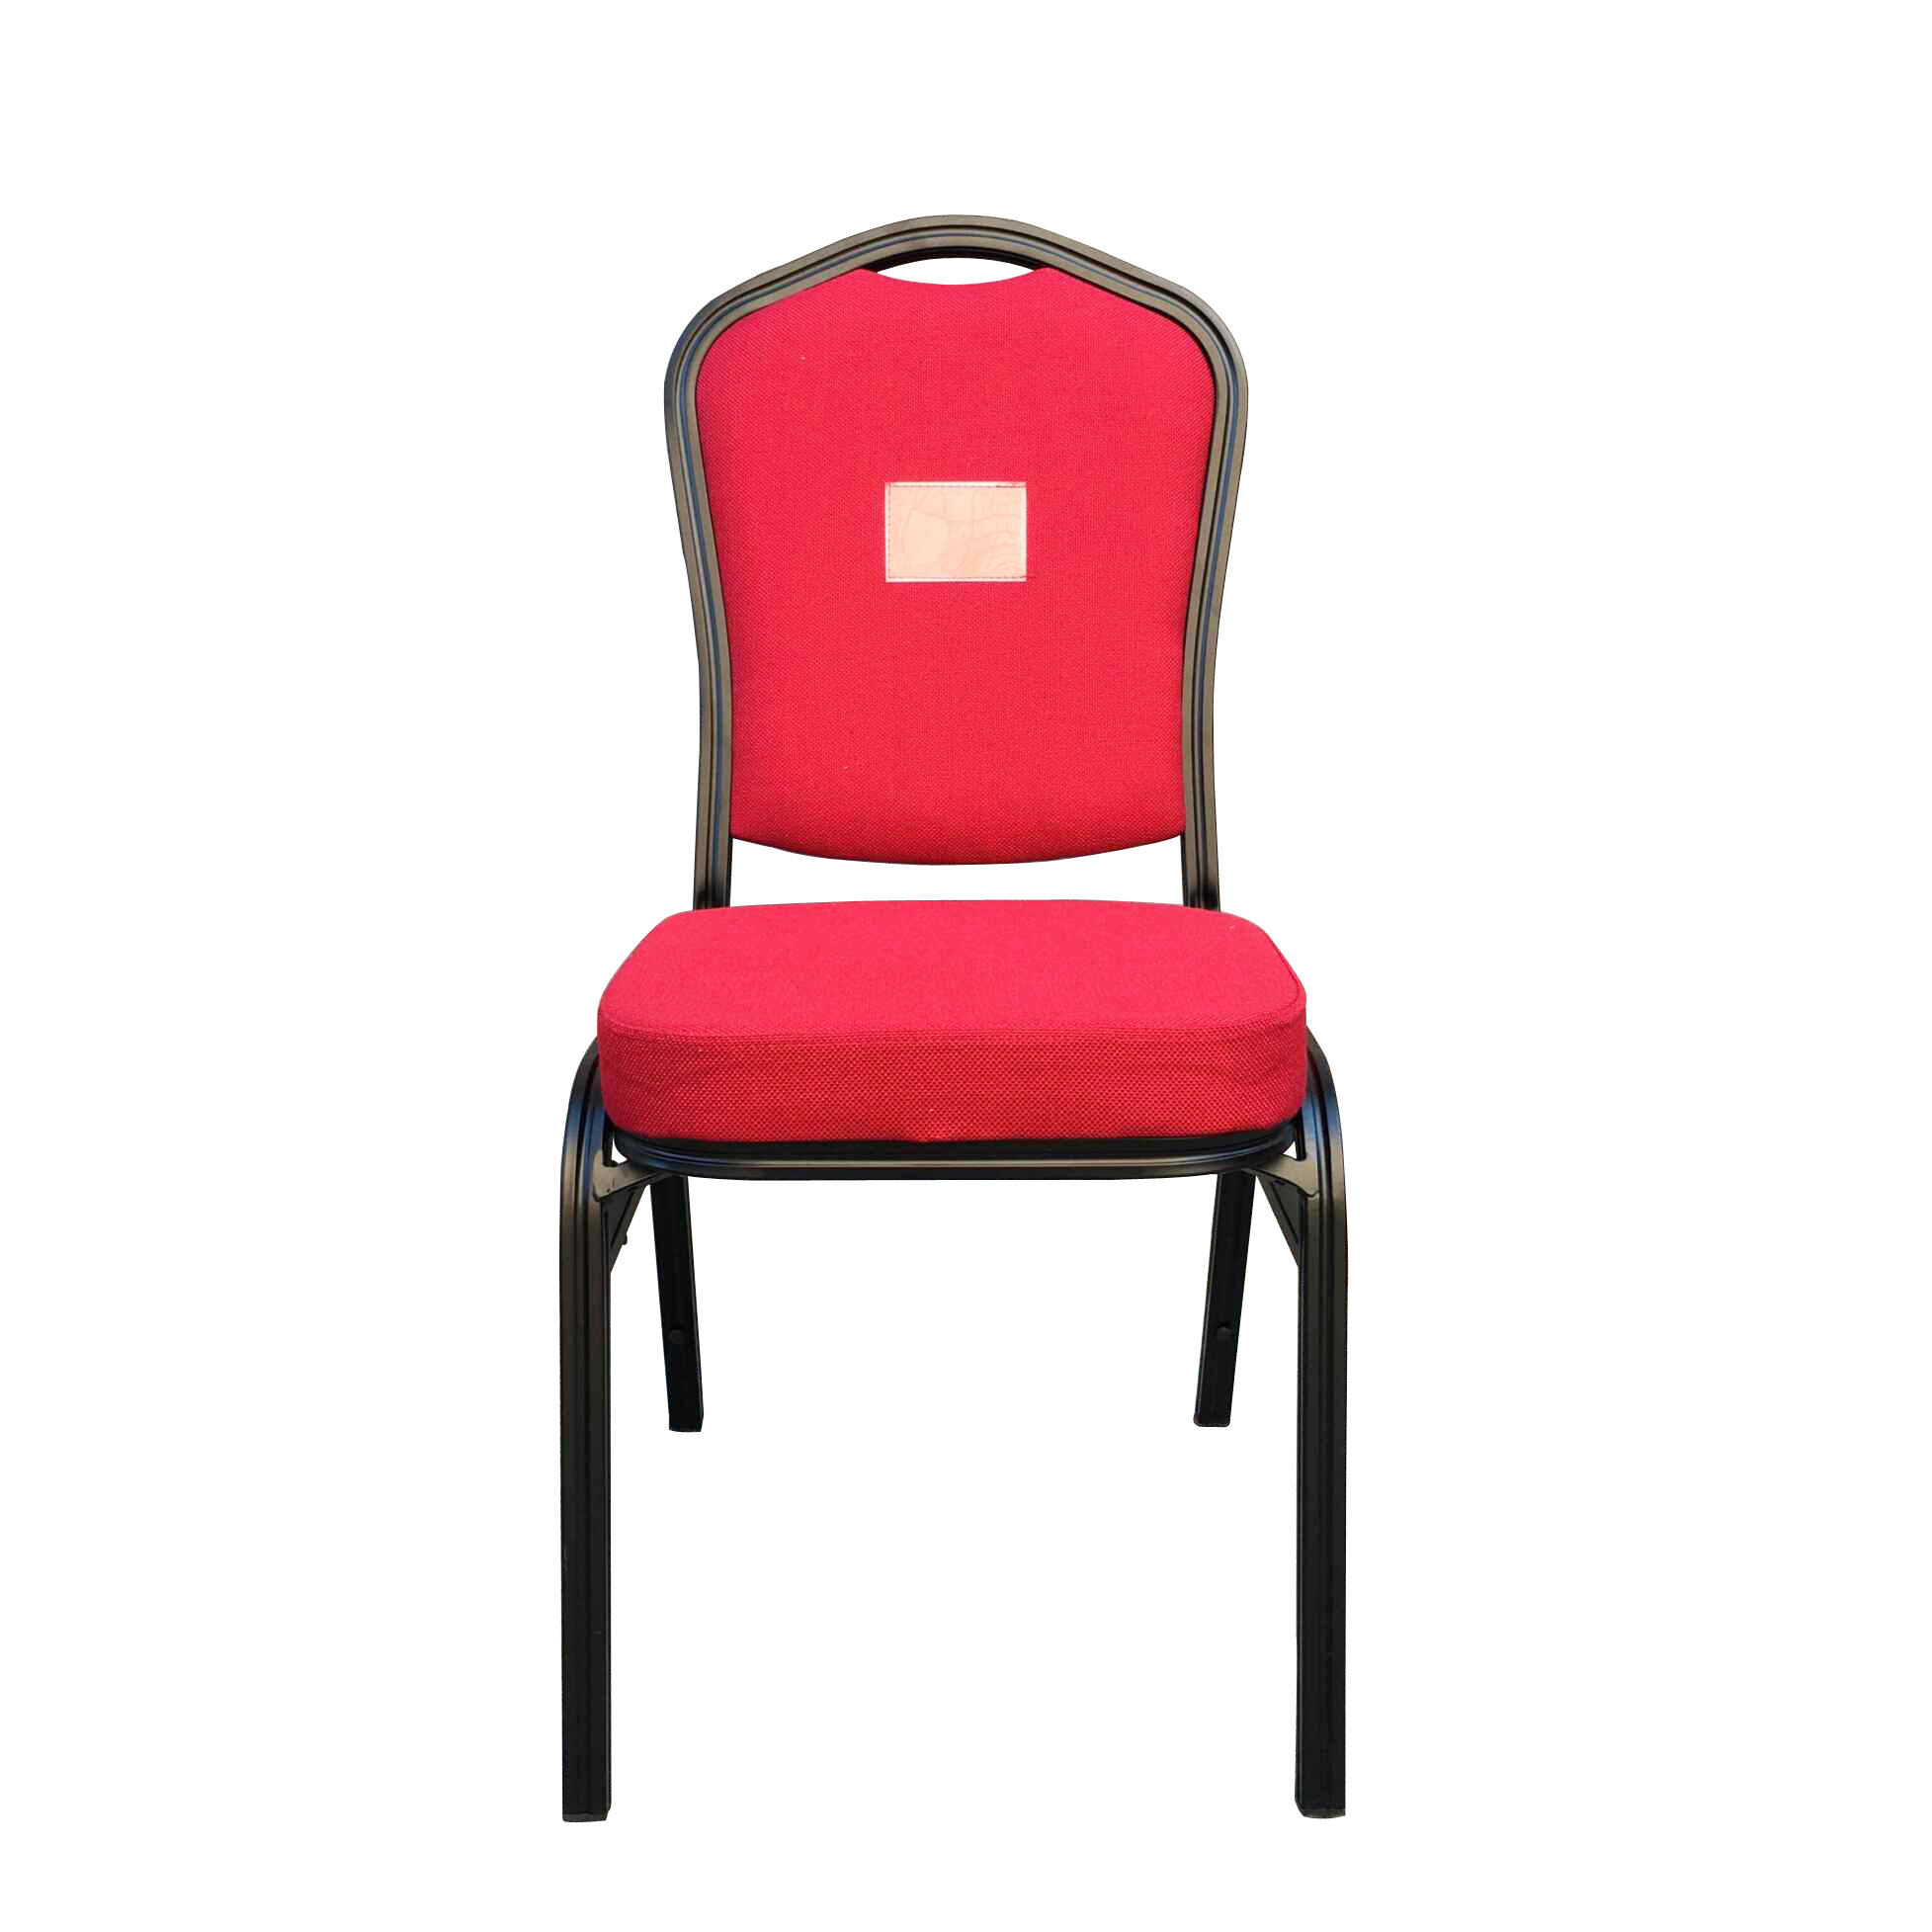 Rapid Delivery for Church Auditorium Design - Banquet Chairs Wholesale SF-L20 – Jiangchang Furniture